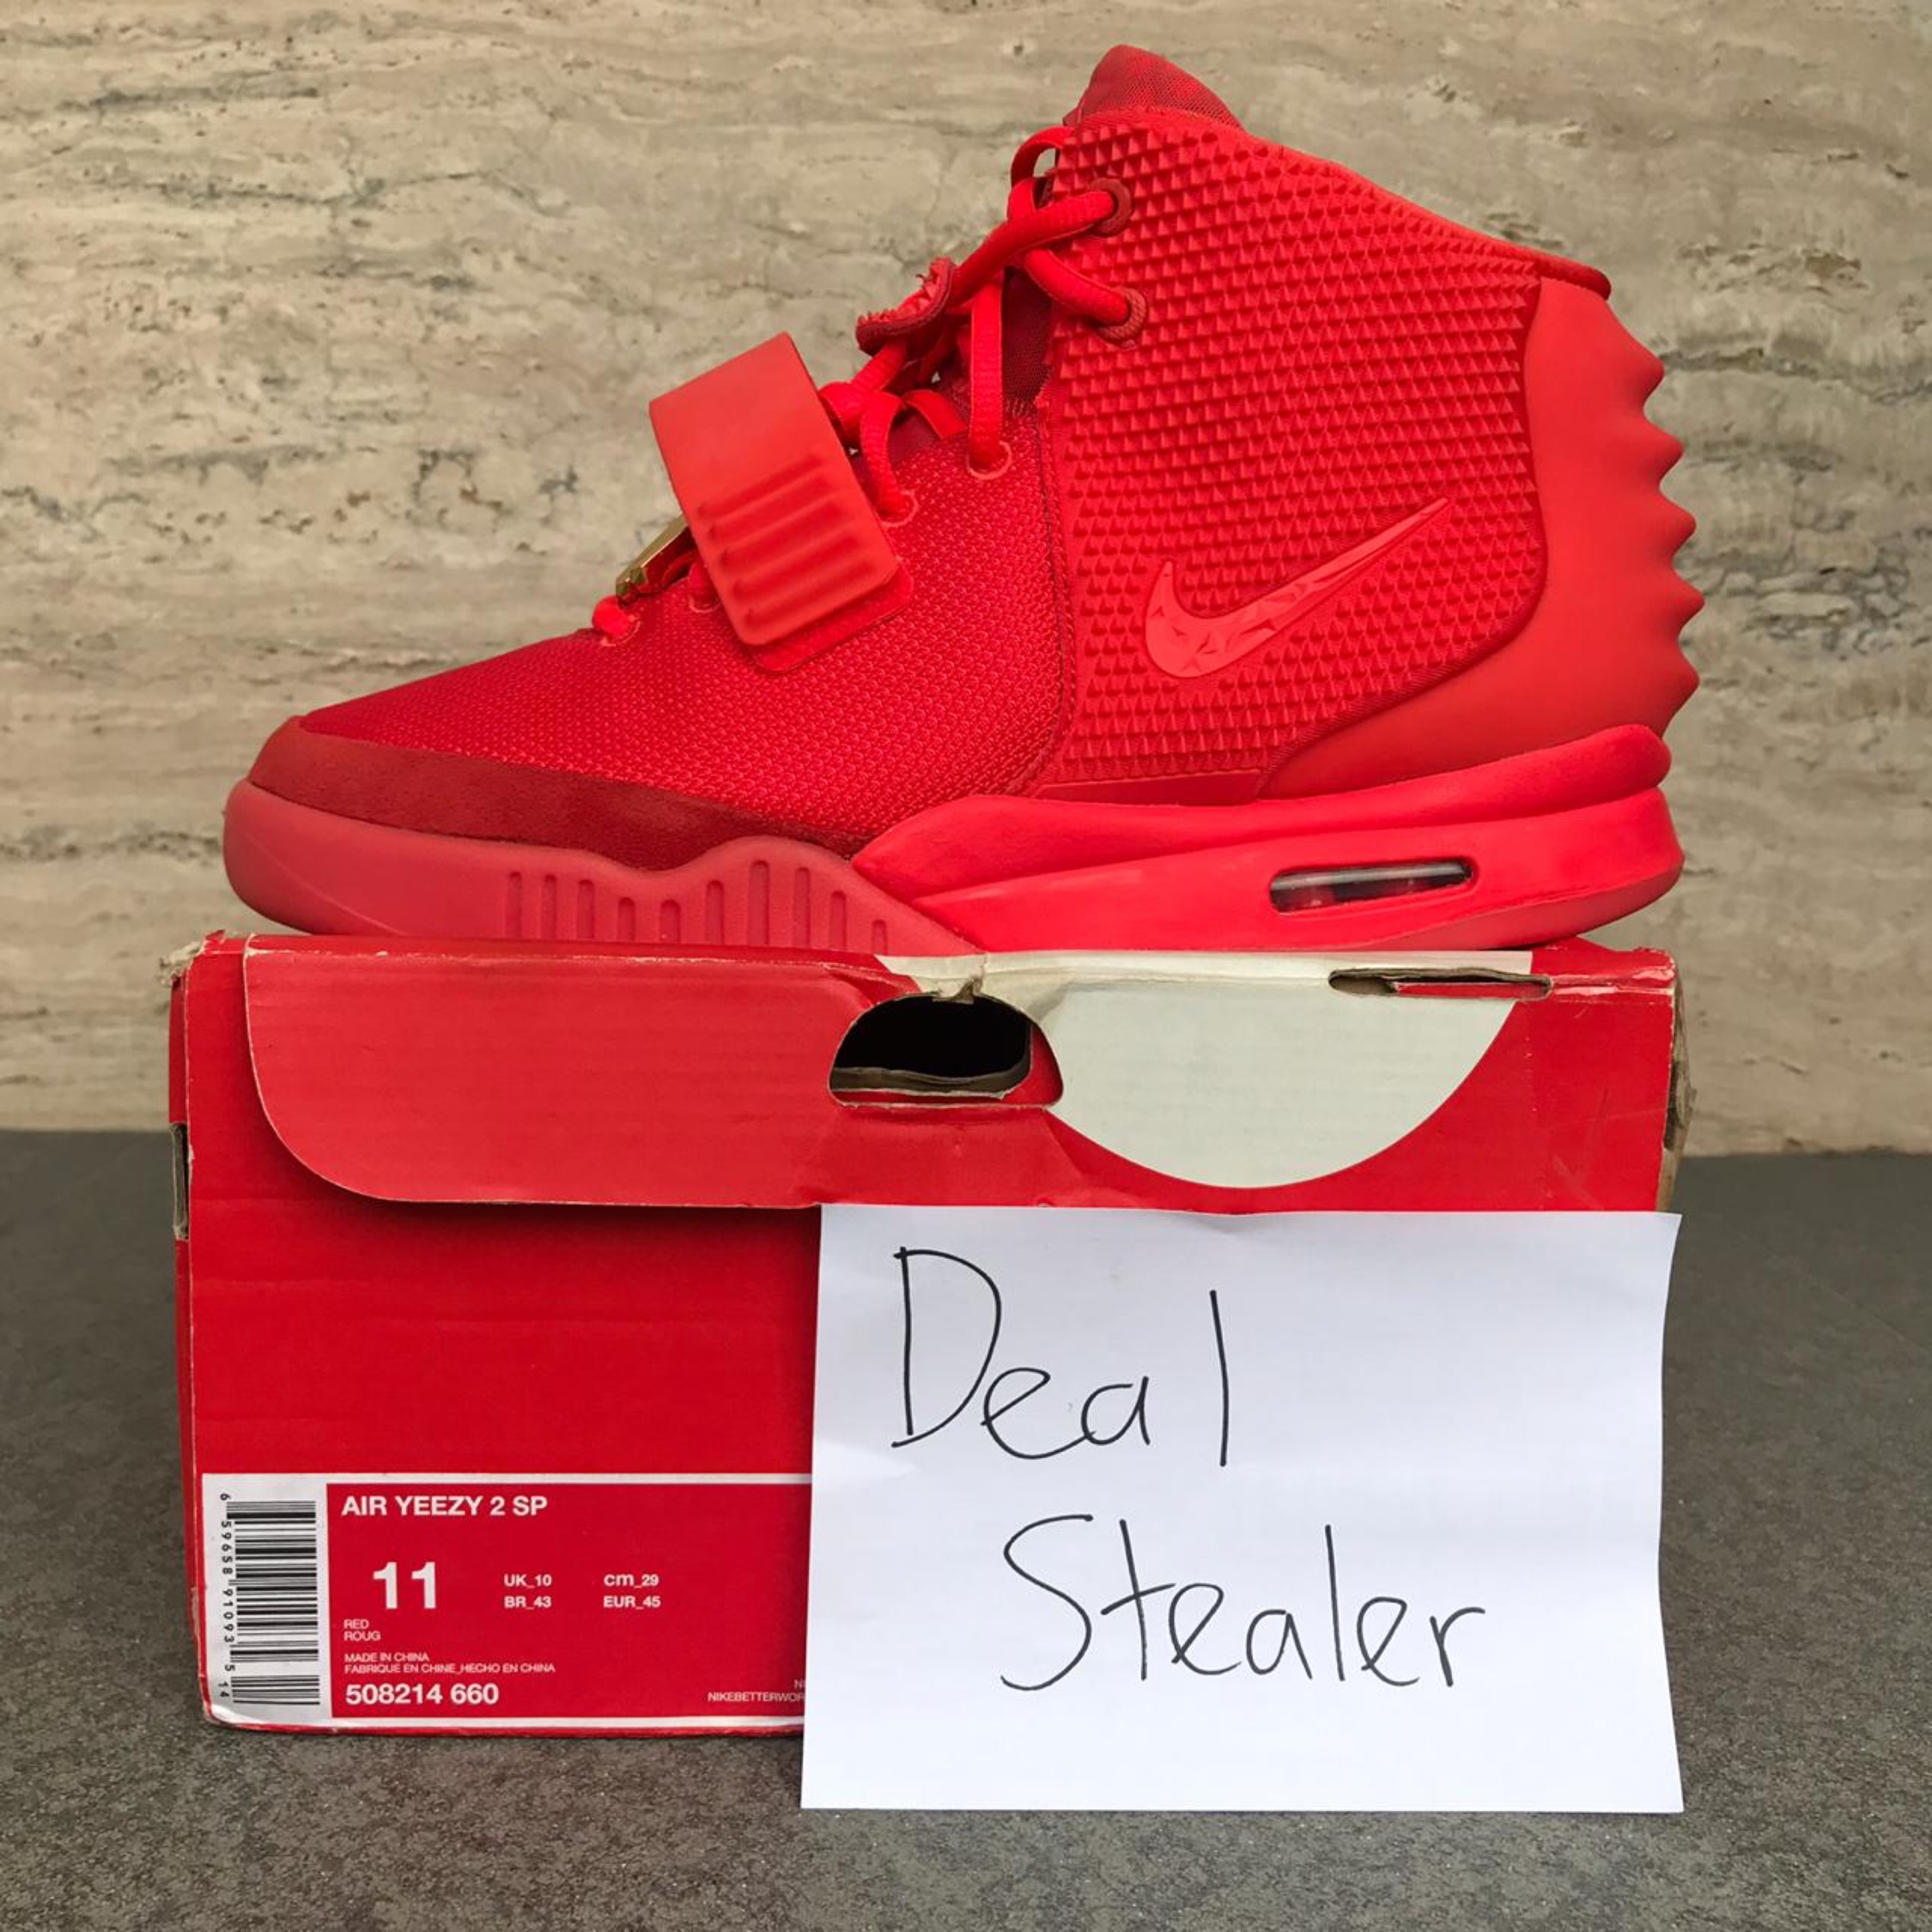 b40181a83c5 Nike air yeezy red october jpg 2250x2250 Cartoon yeezy red octobers shoes